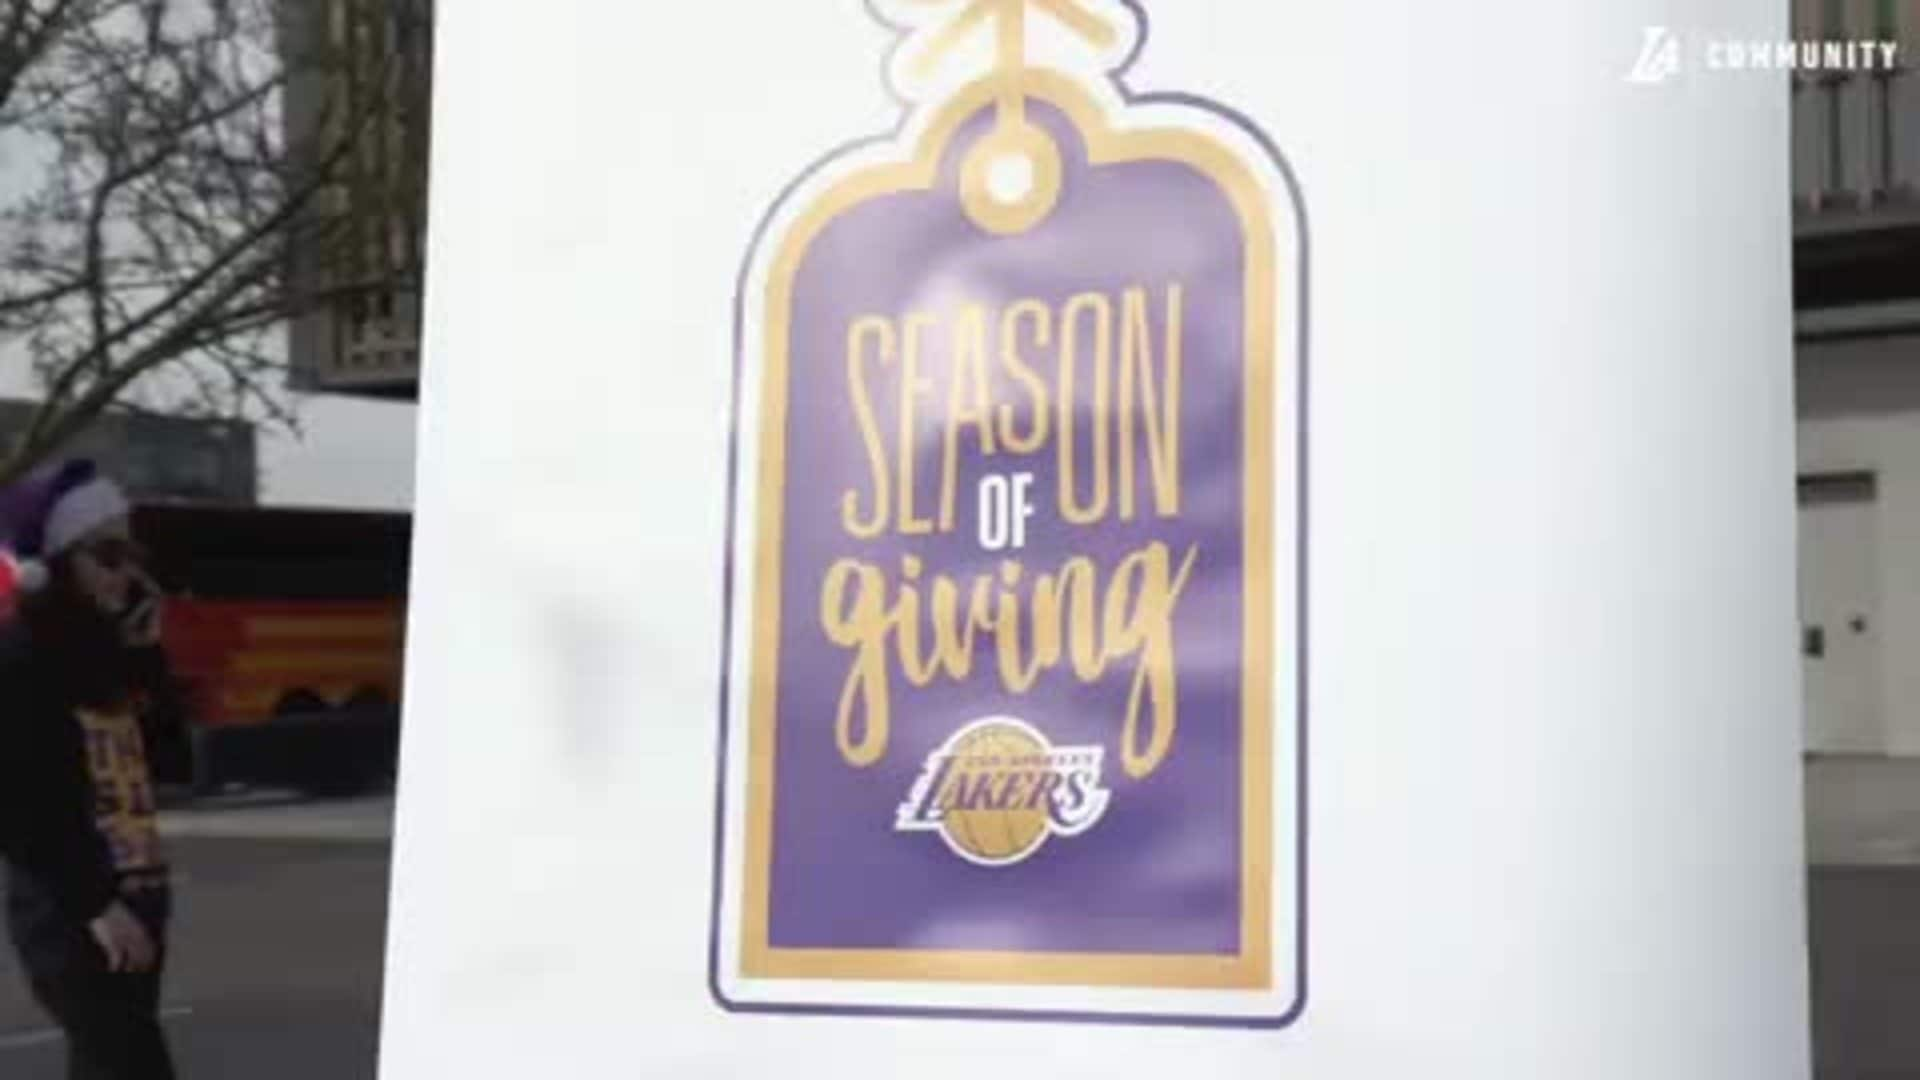 Lakers' Season of Giving presented by East West Bank